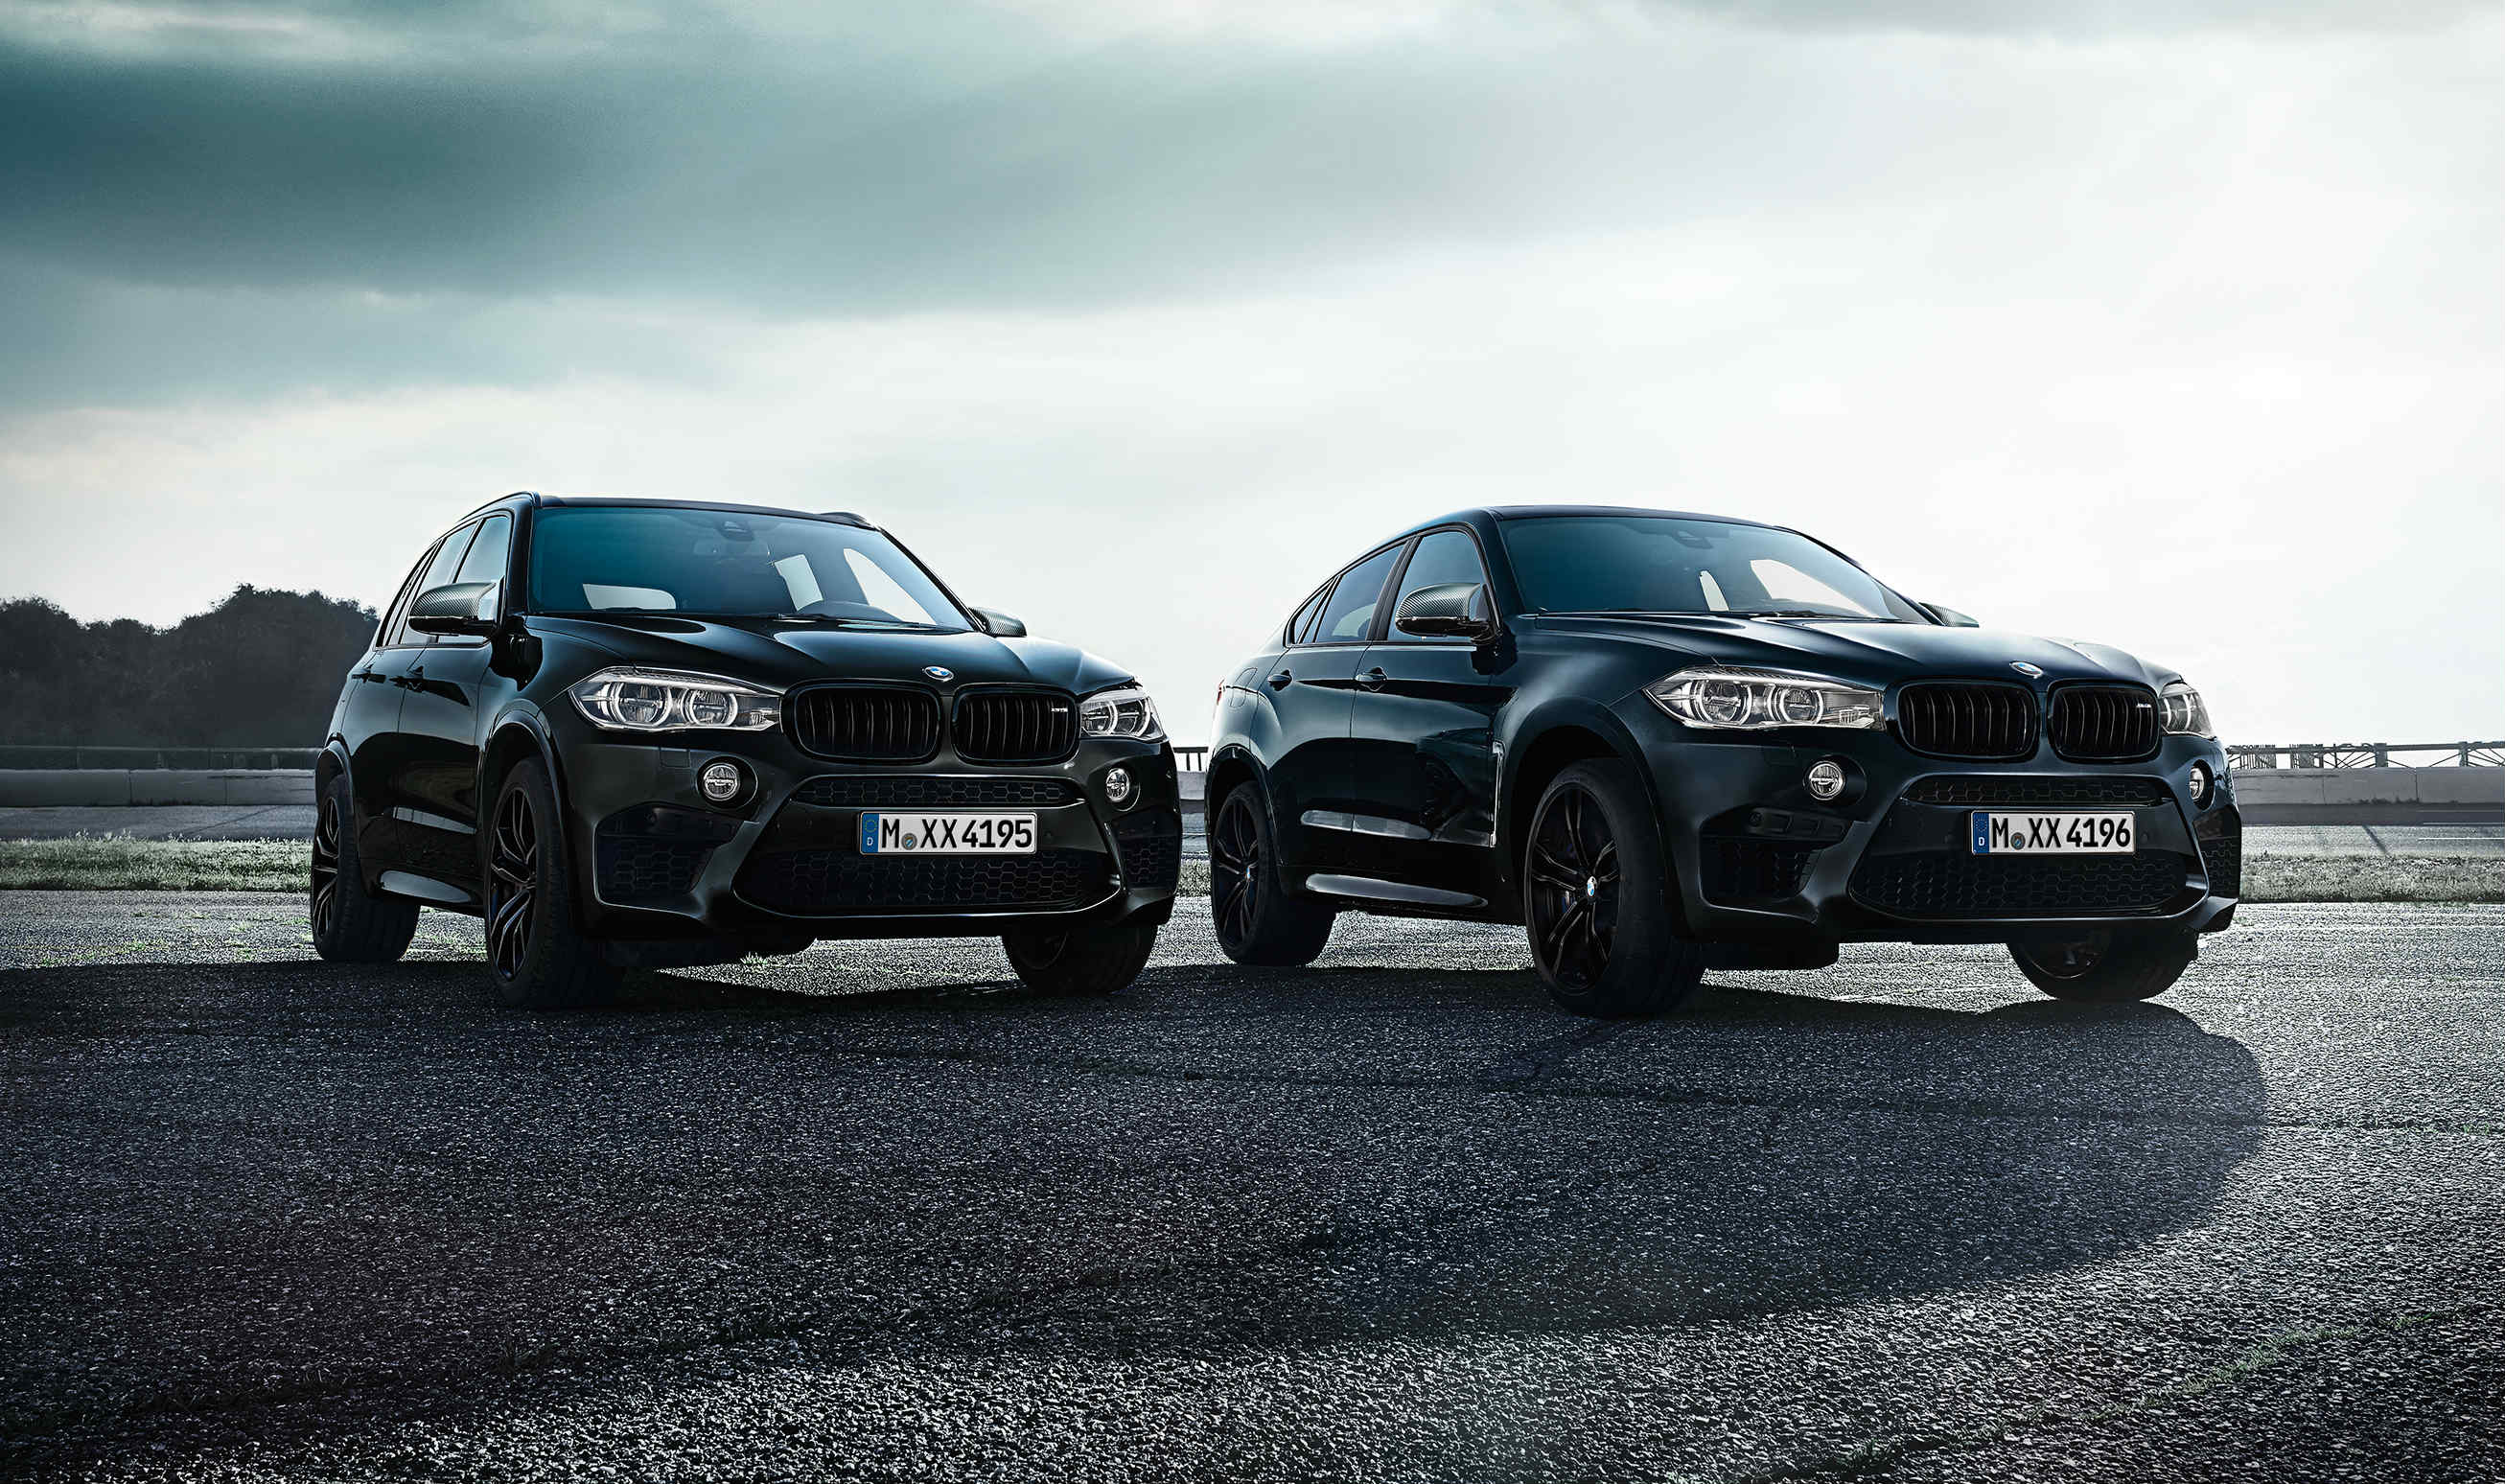 Bmw S Black Fire Edition Of The X5 M And X6 M Torque